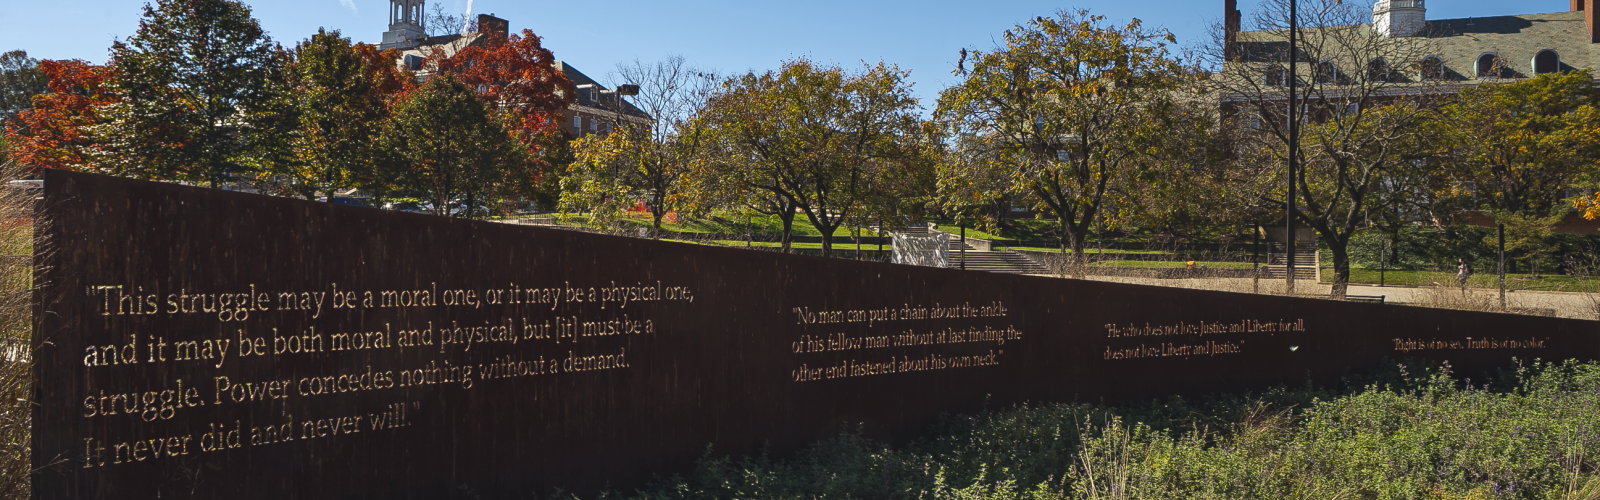 Frederick Douglass Square Garden Quote Wall